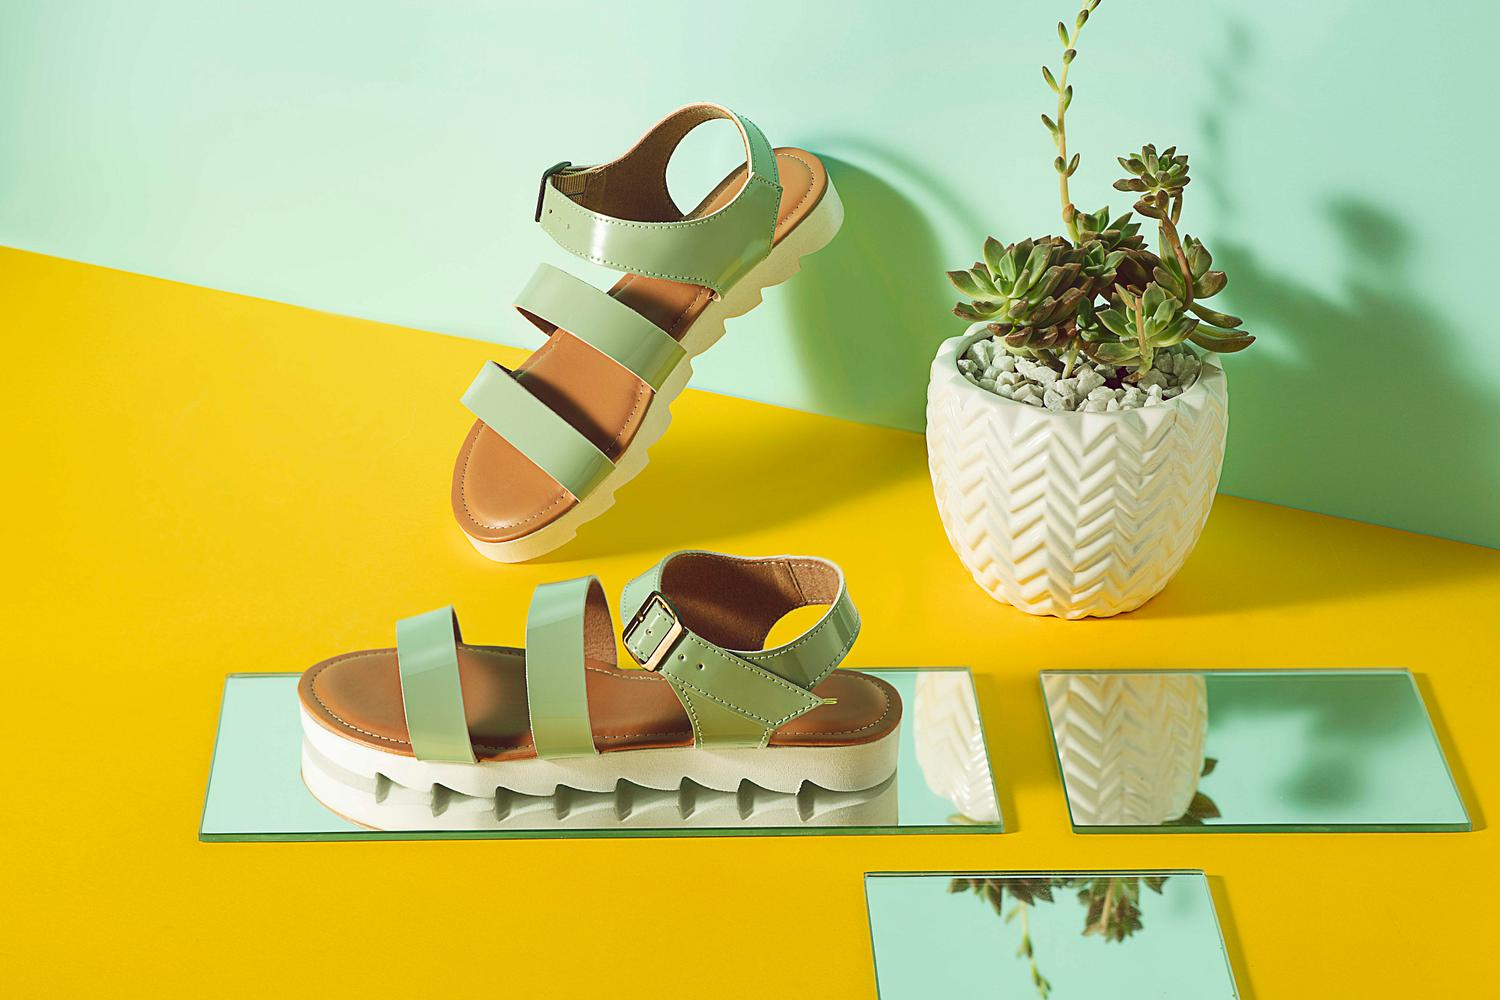 Client: Sylcon Footwear